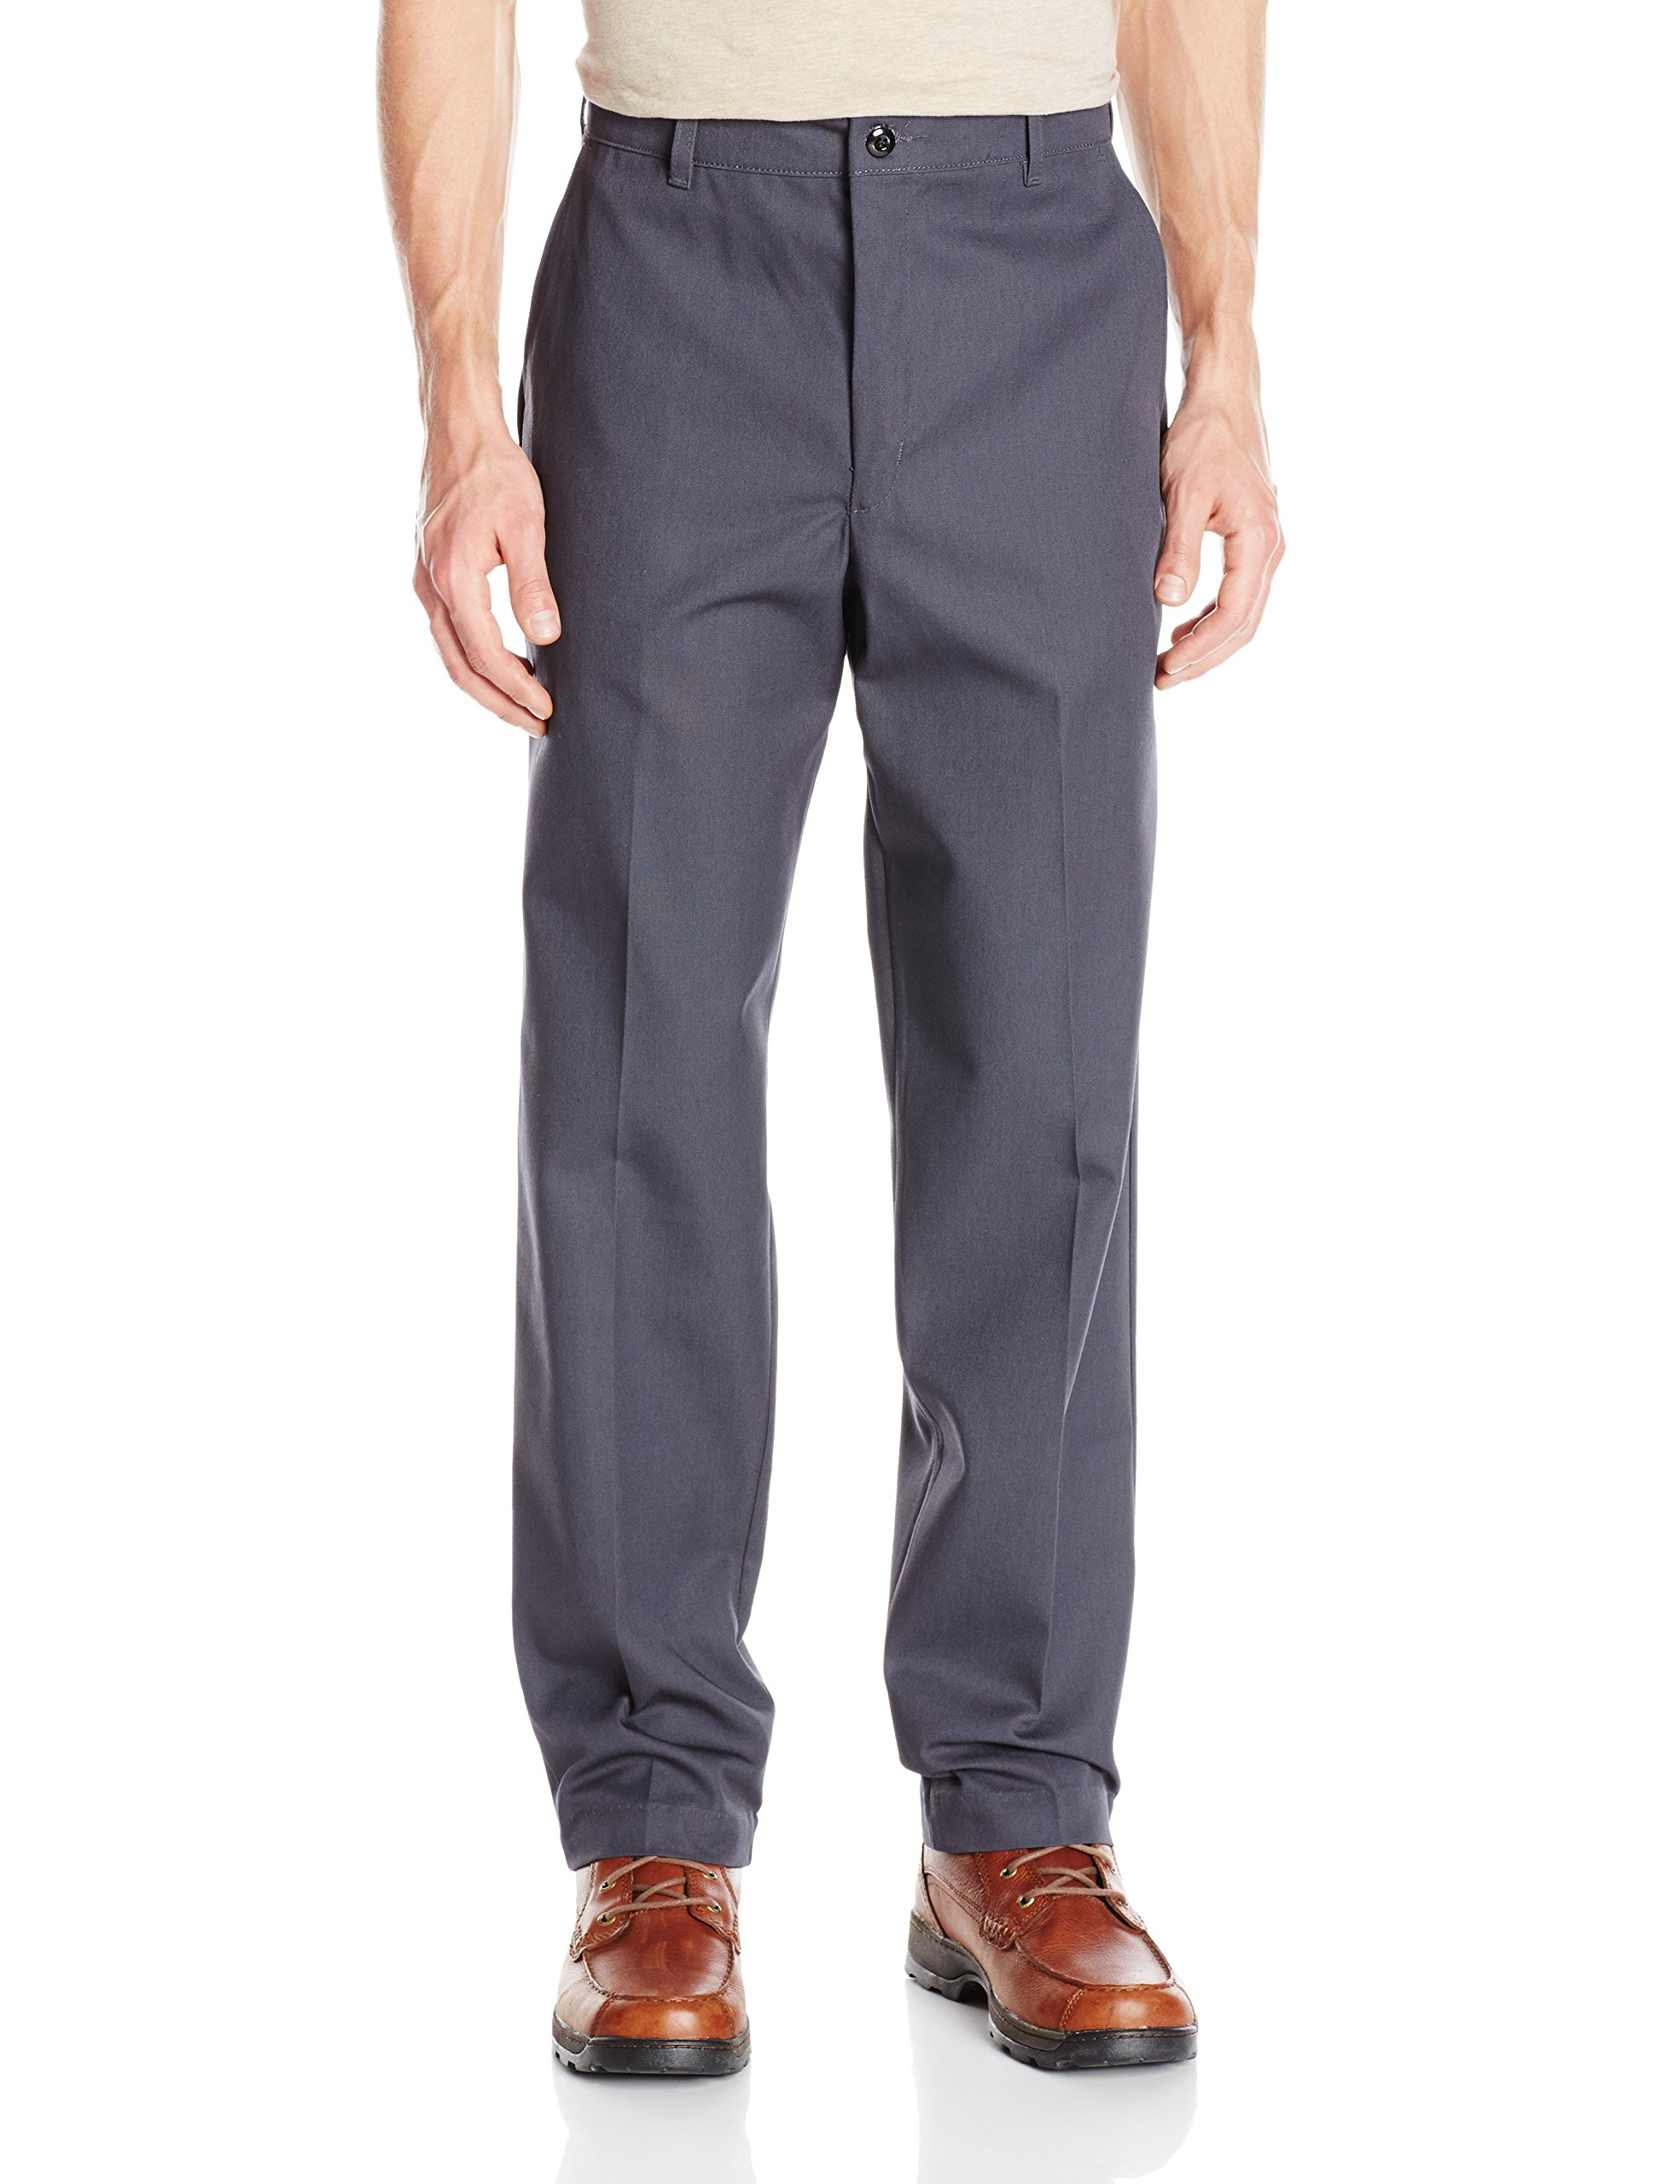 Red Kap Men's' Stain Resistant, Flat Front work Pants, Charcoal, 34x32